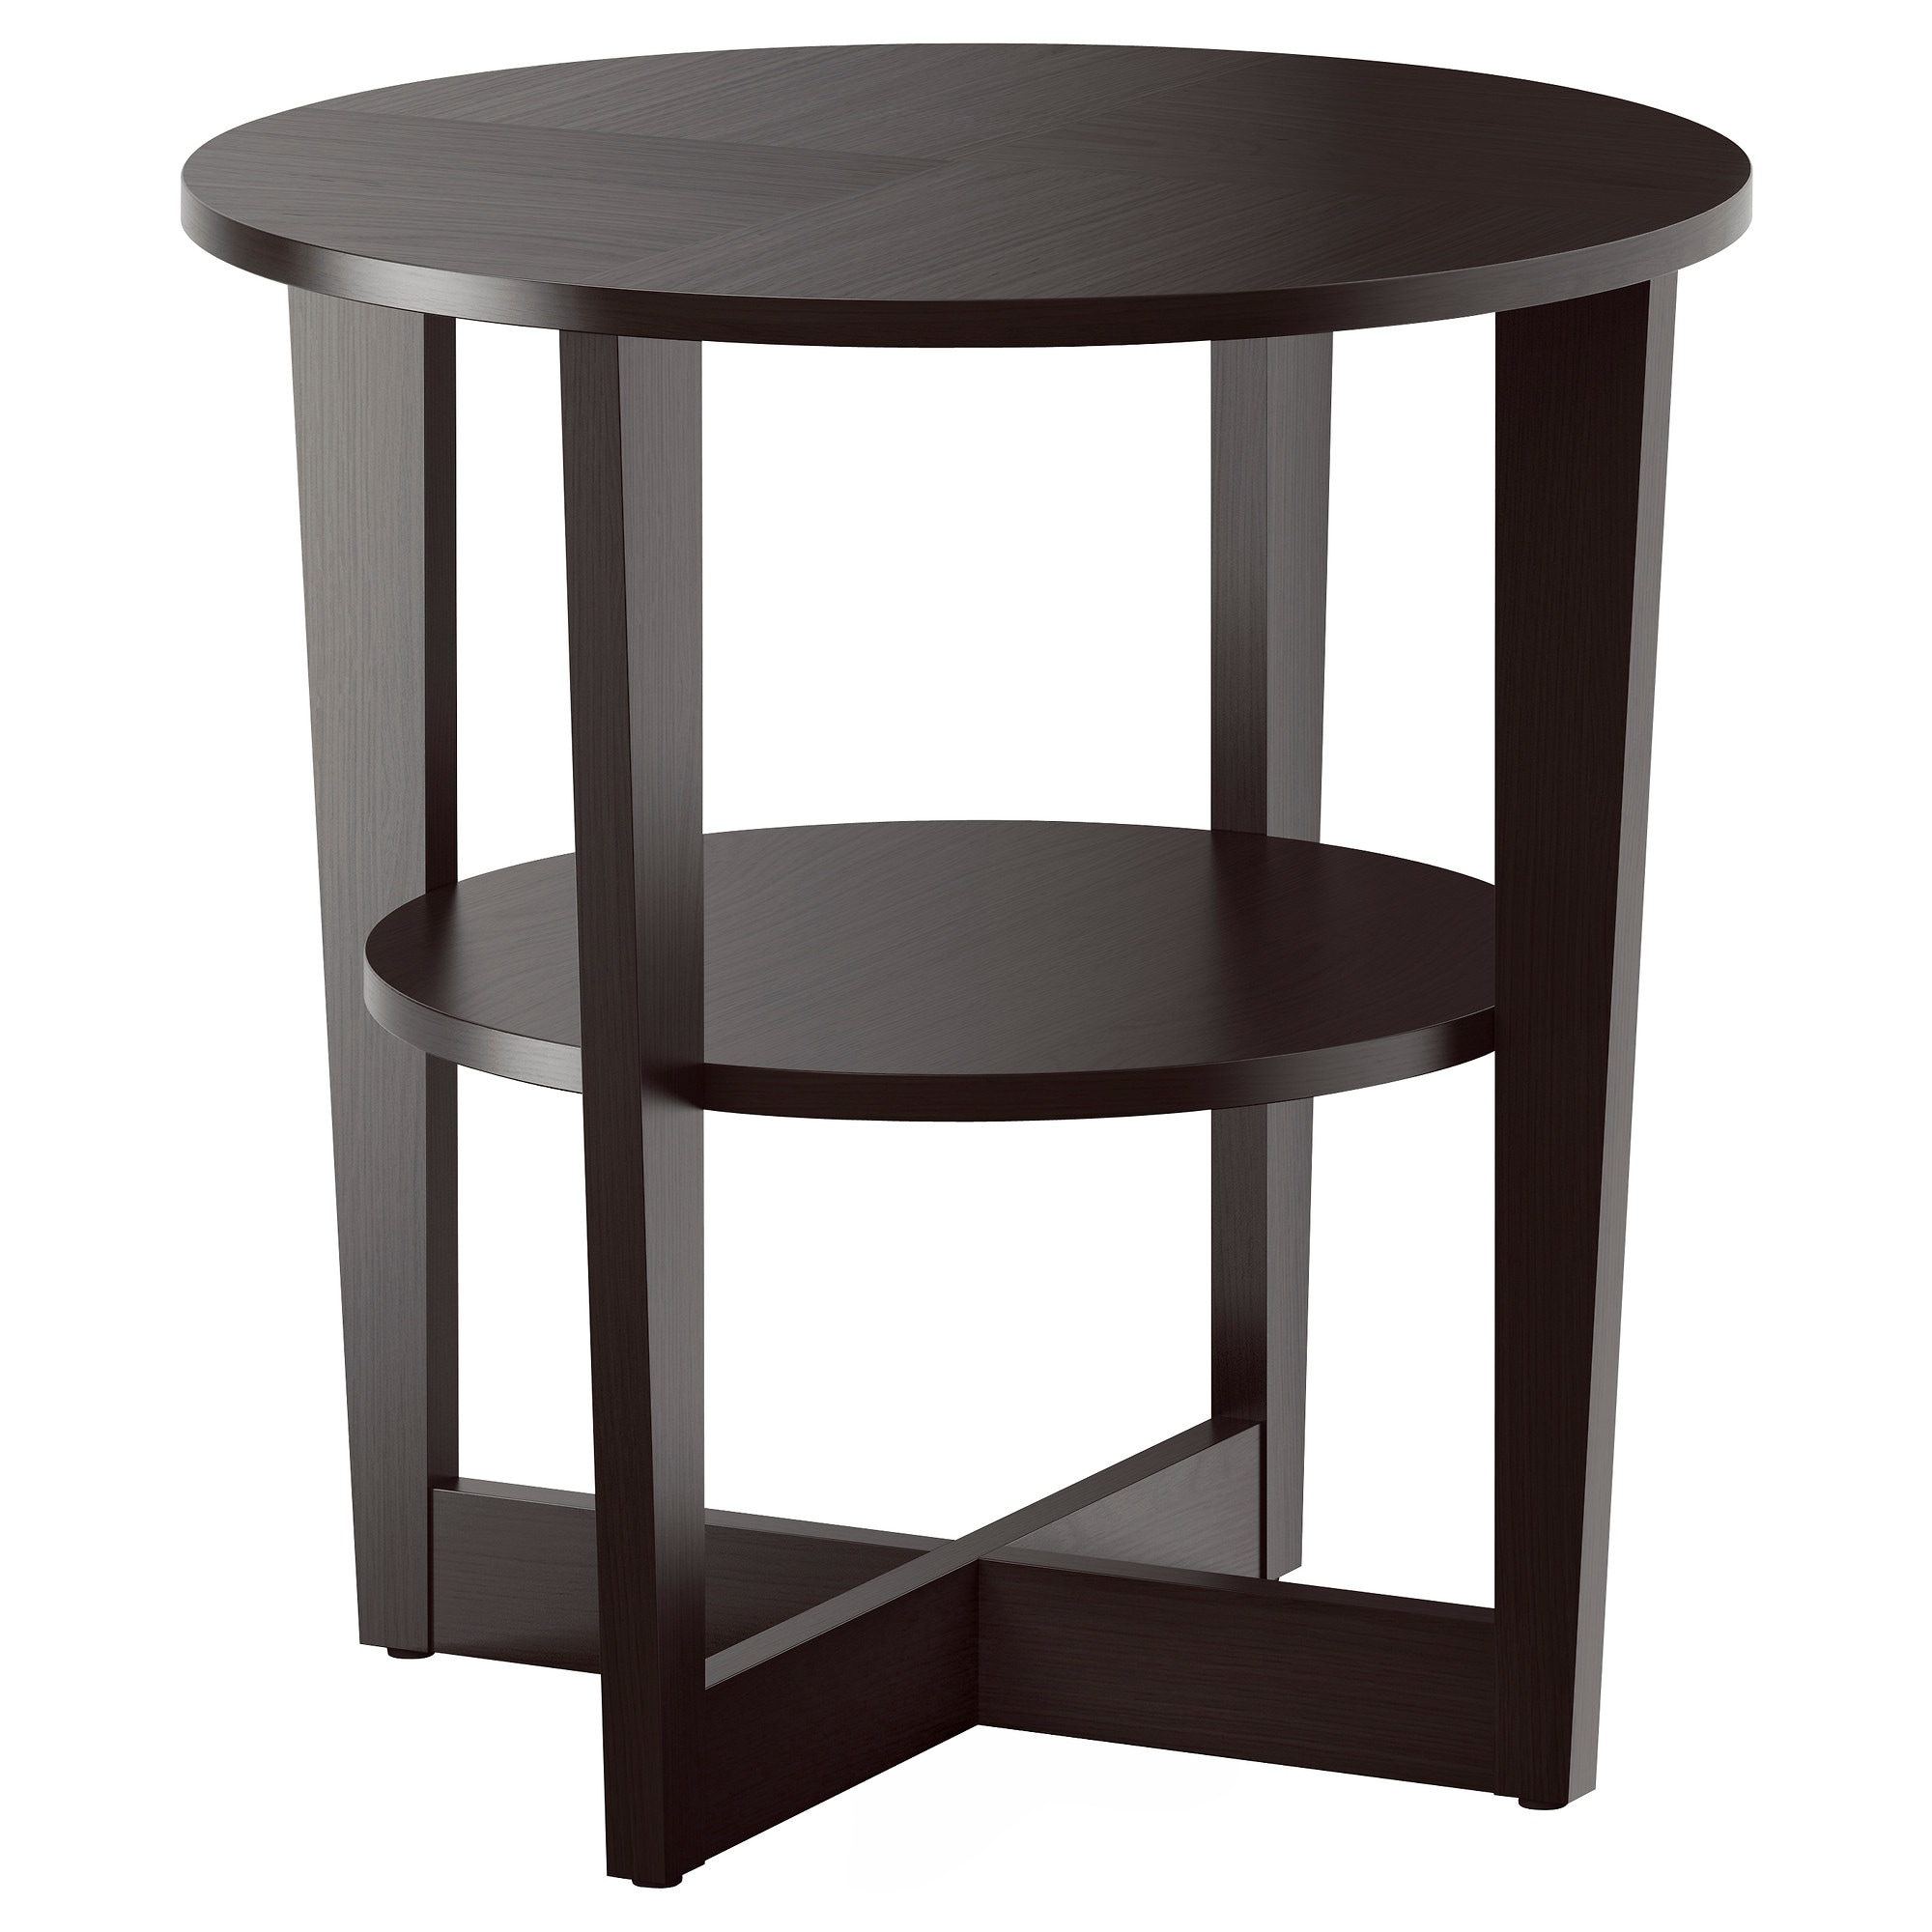 VEJMON Side table IKEA